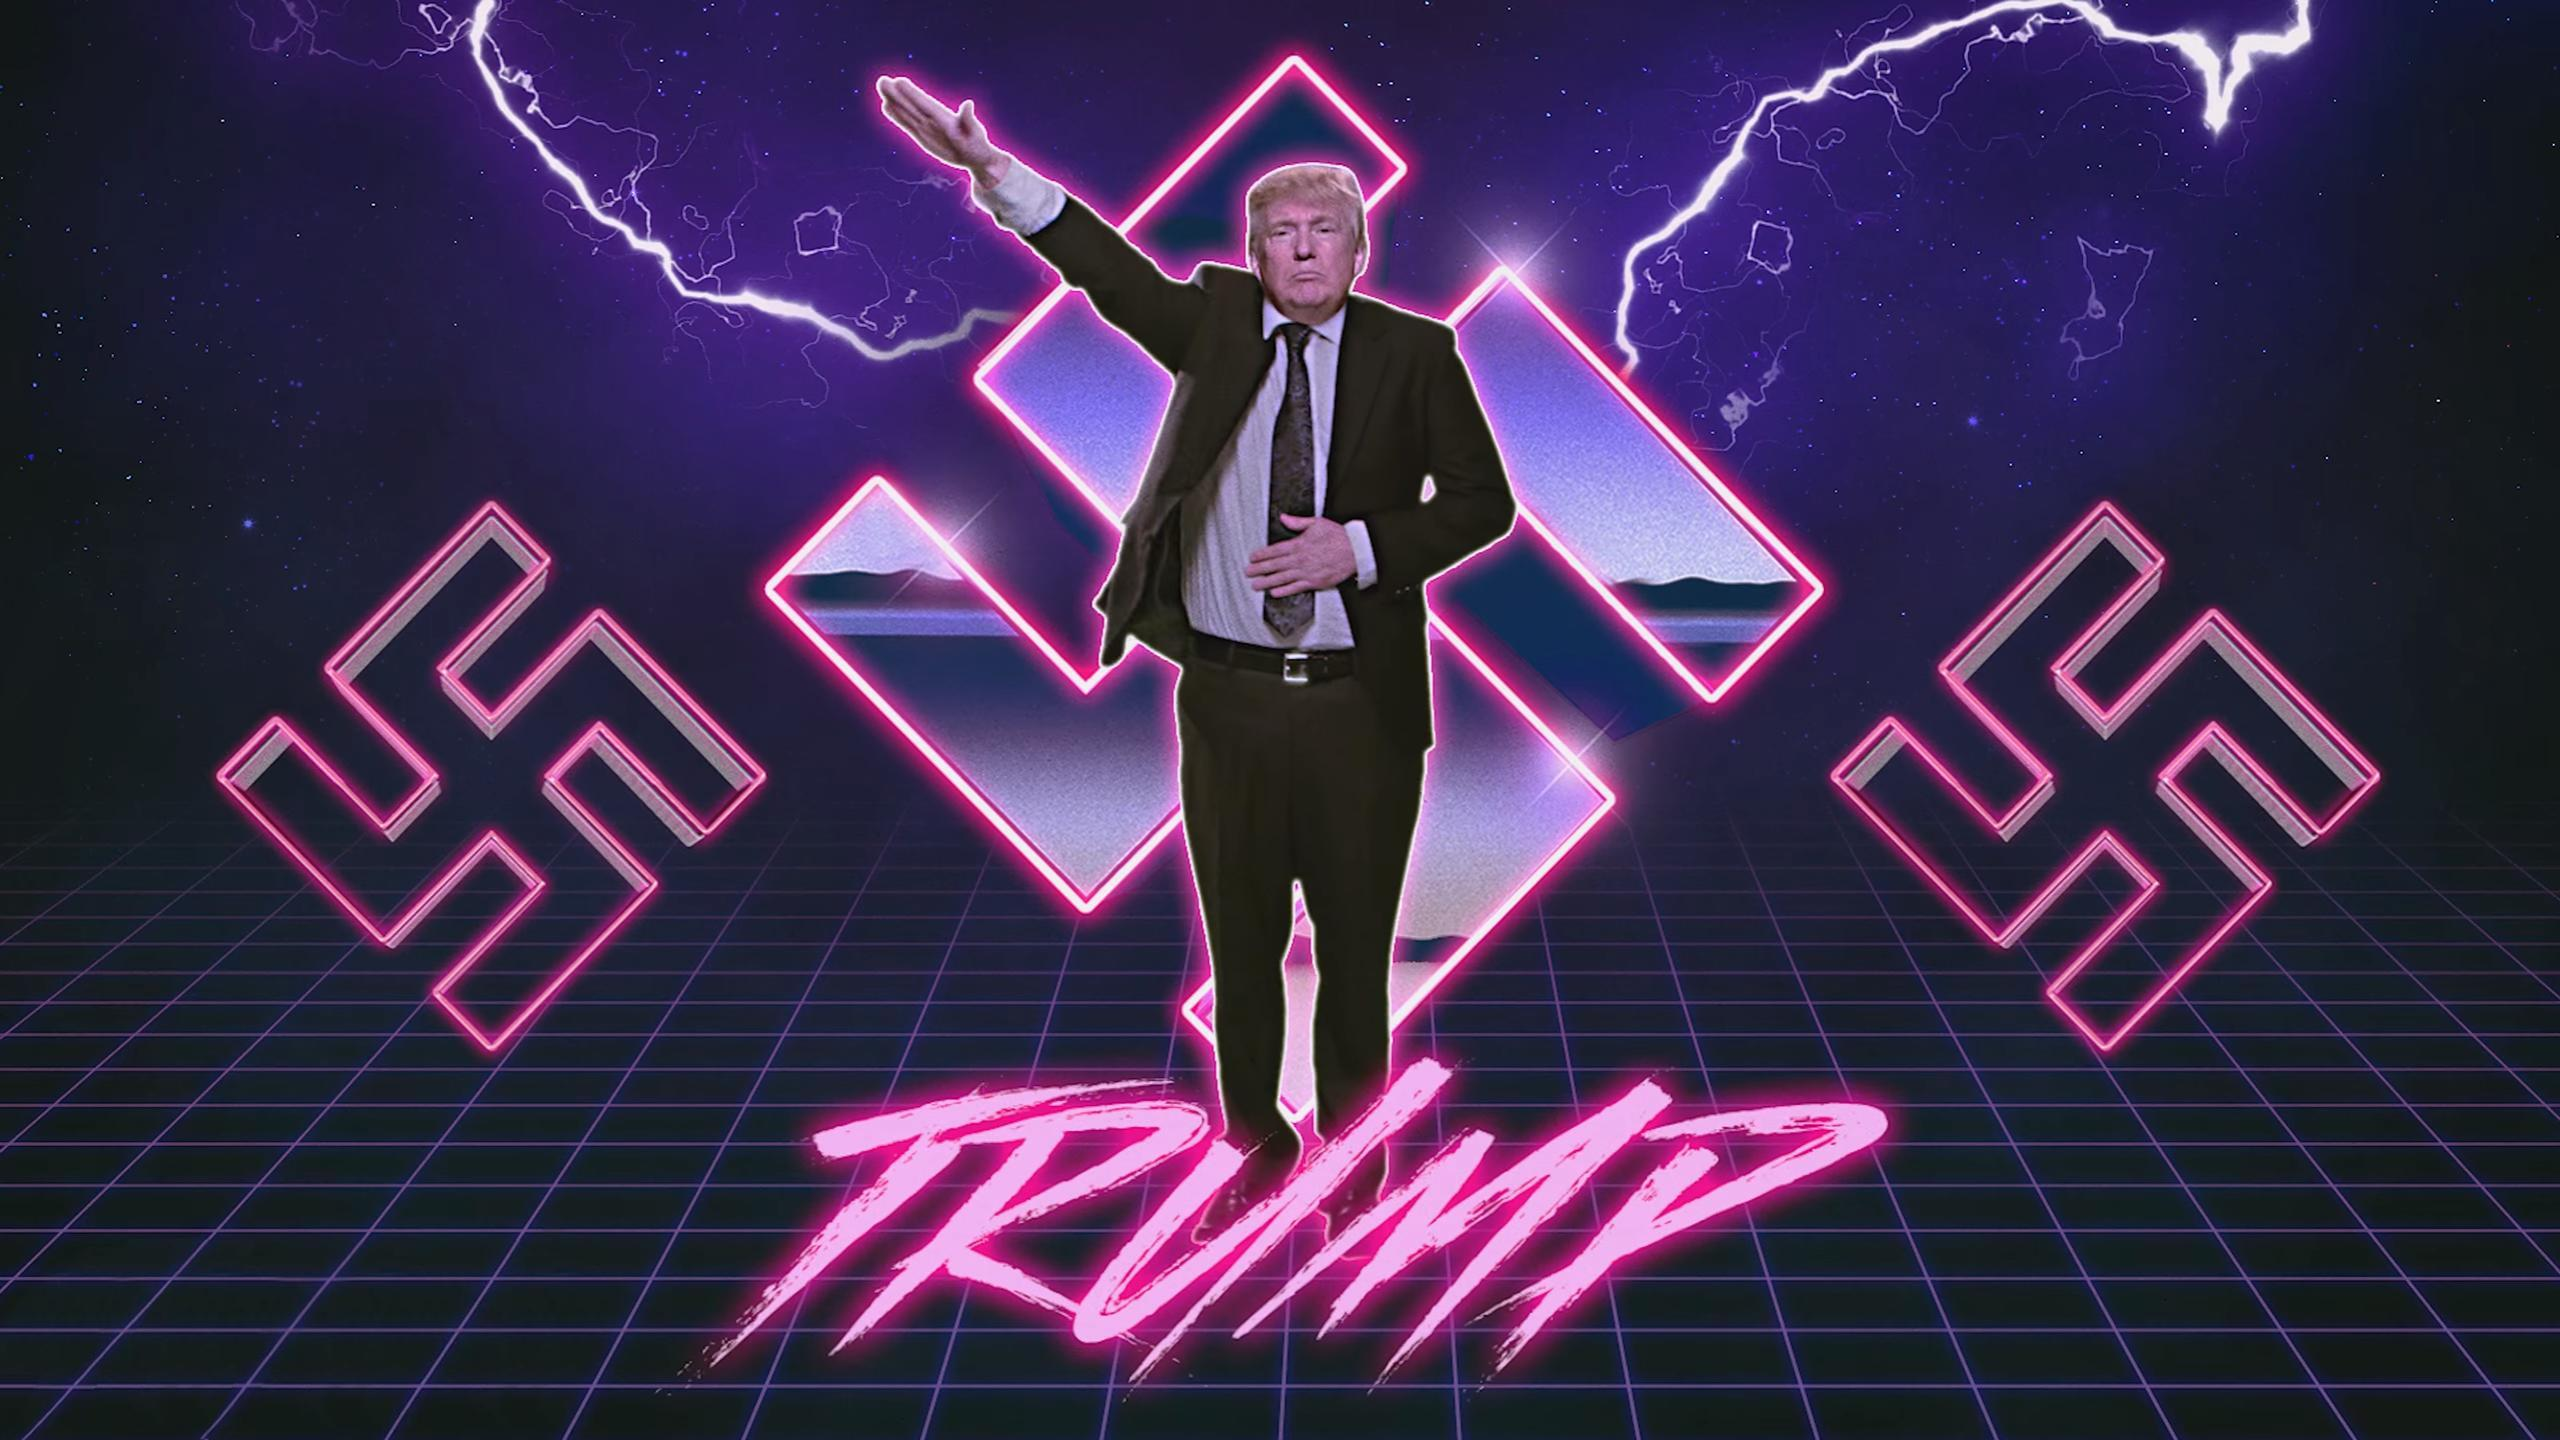 HD Trump Wallpaper